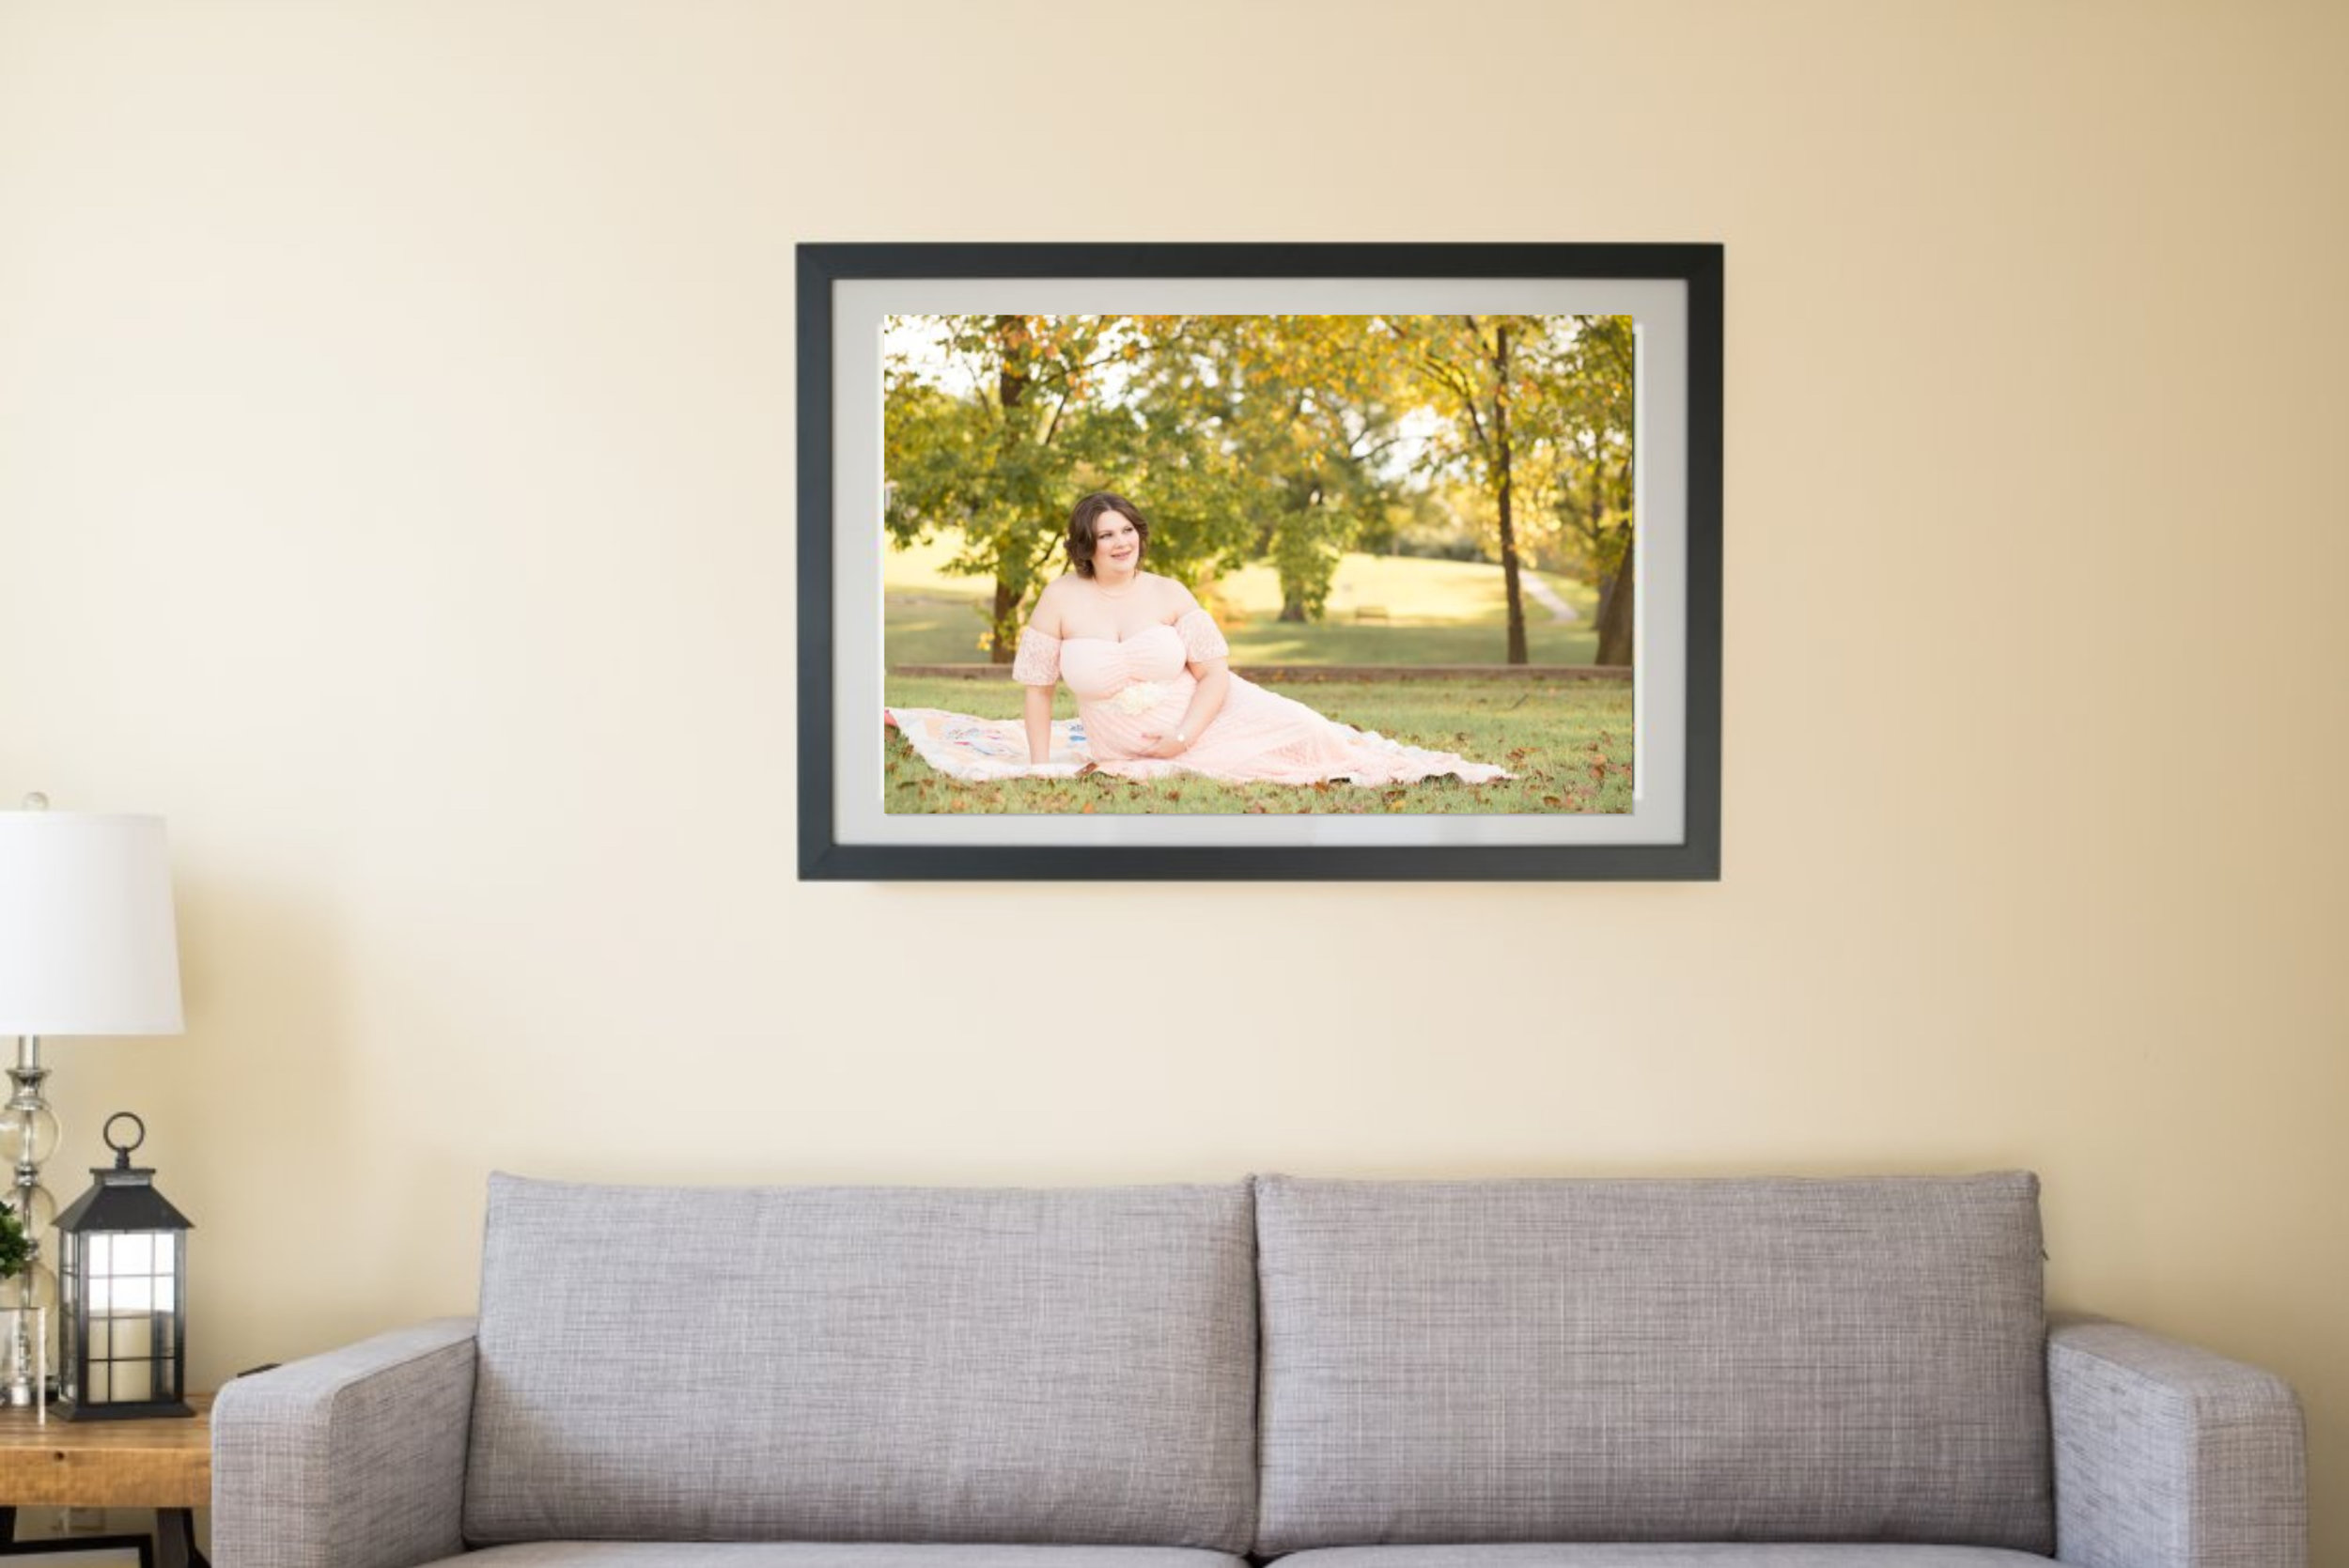 maternity photo on wall design